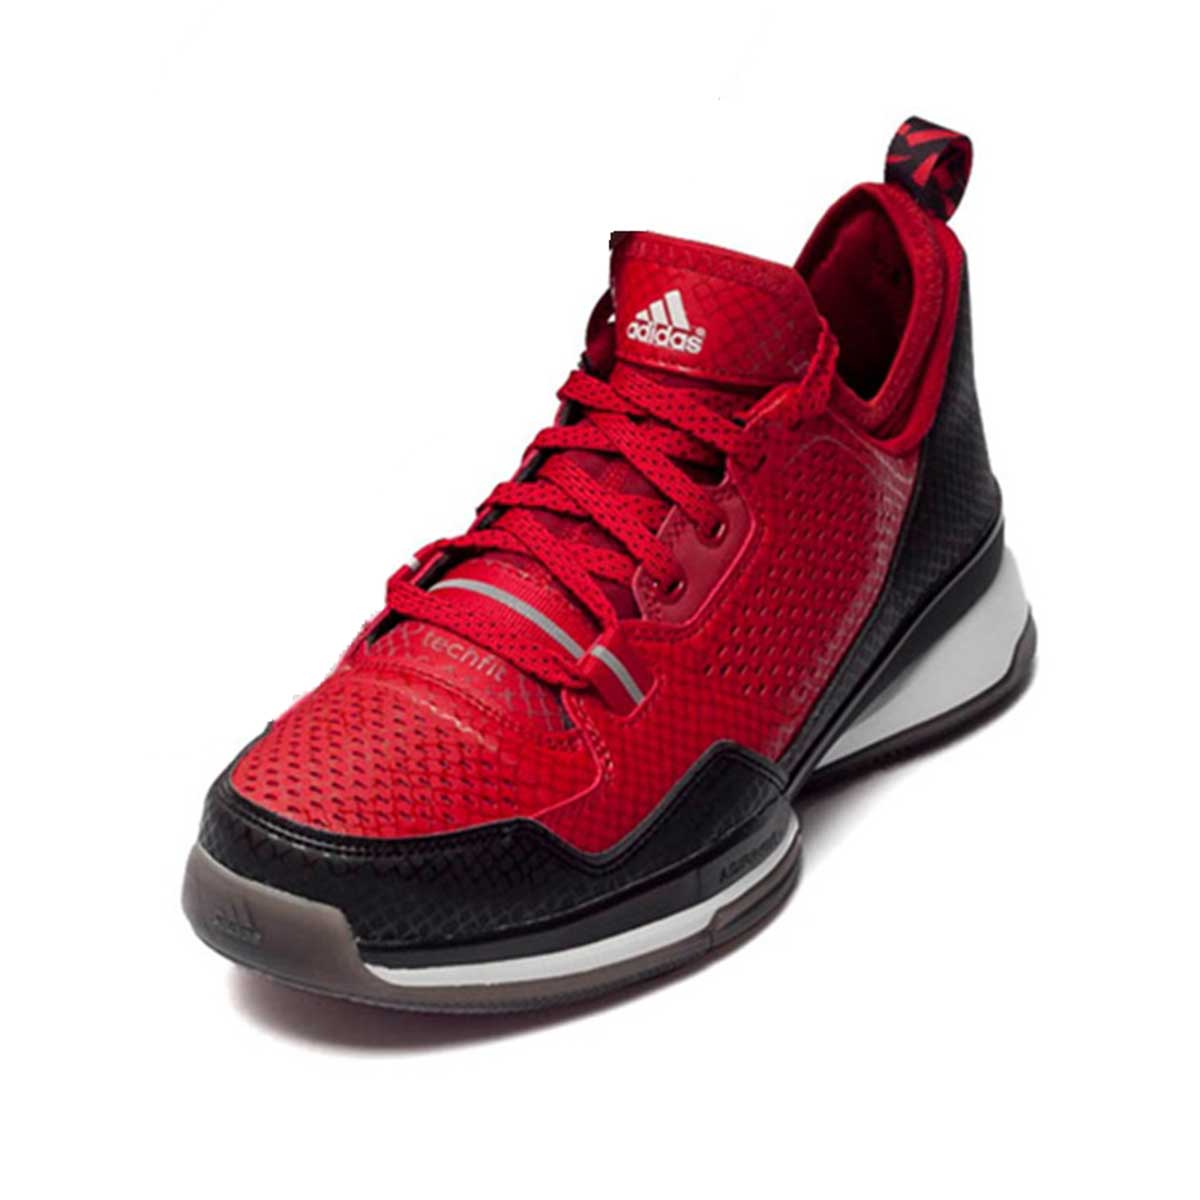 3e1f07c1eb77 Buy Adidas D Lillard Basketball Shoes India